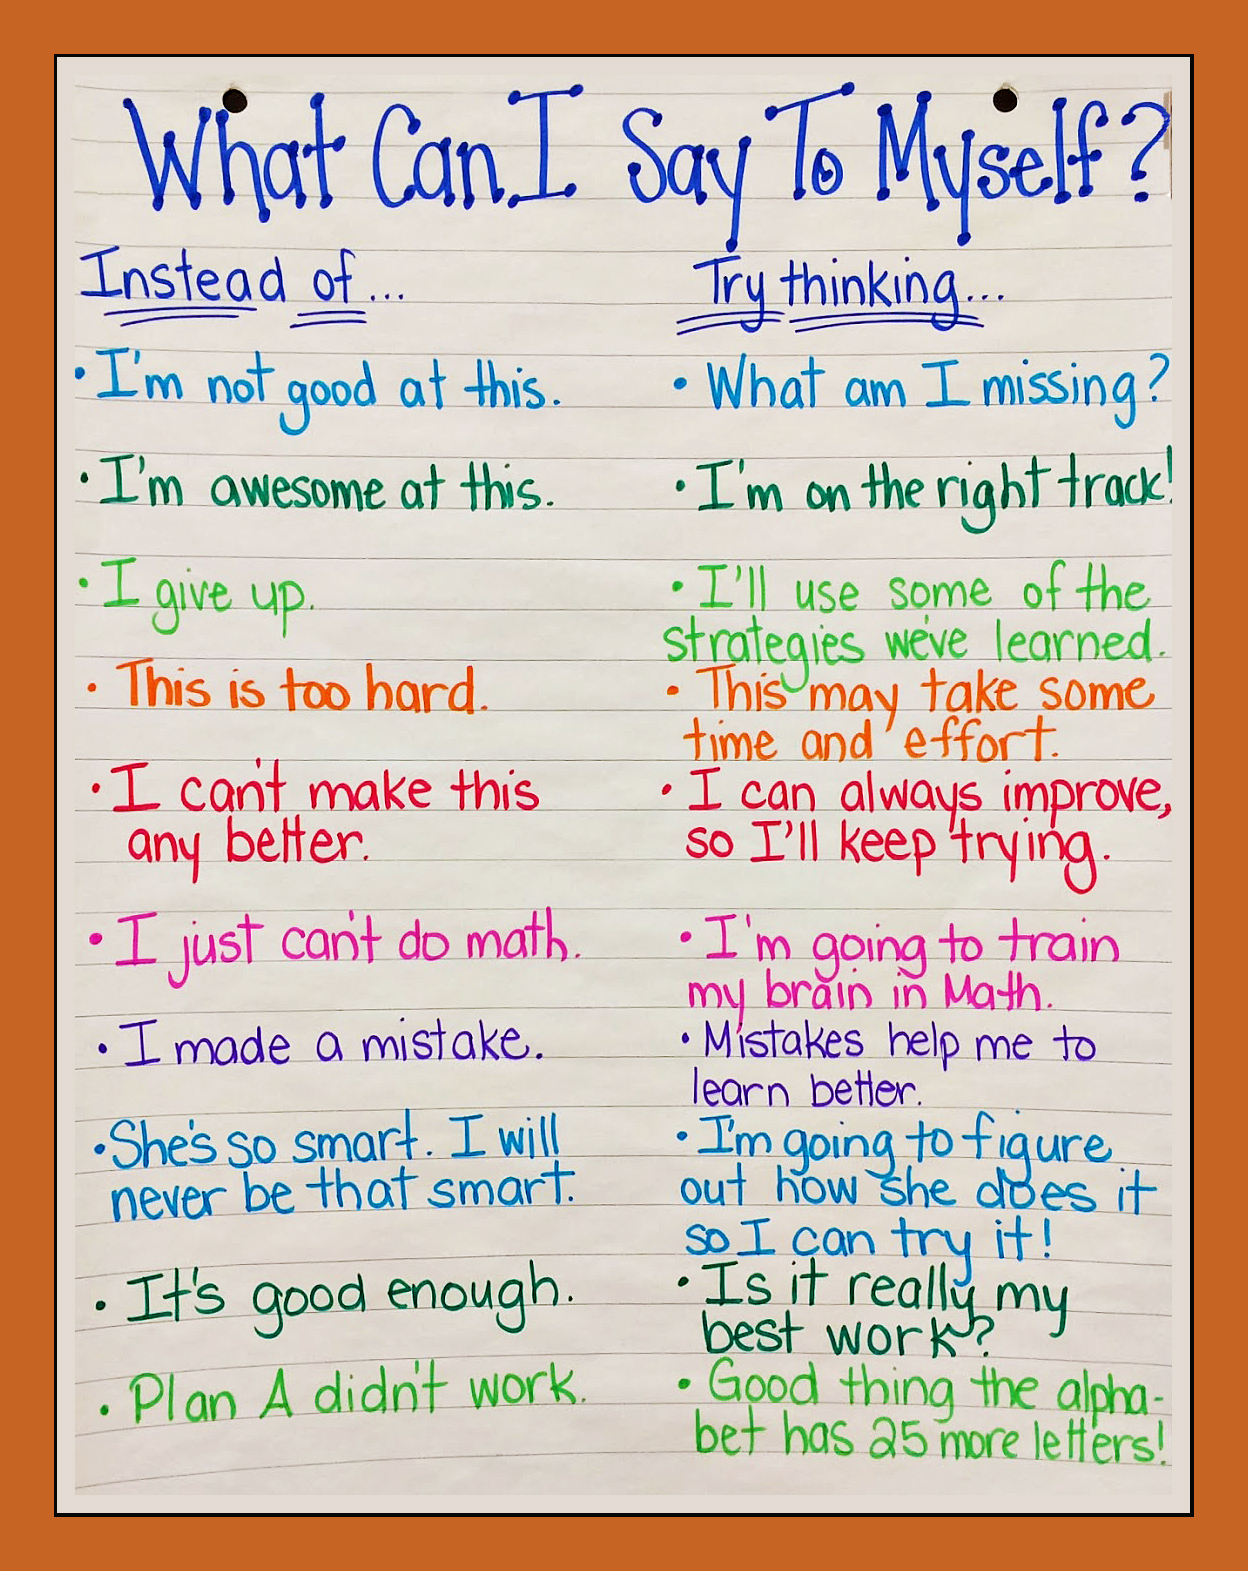 Worksheet Positive Self Talk Worksheet Worksheet Fun